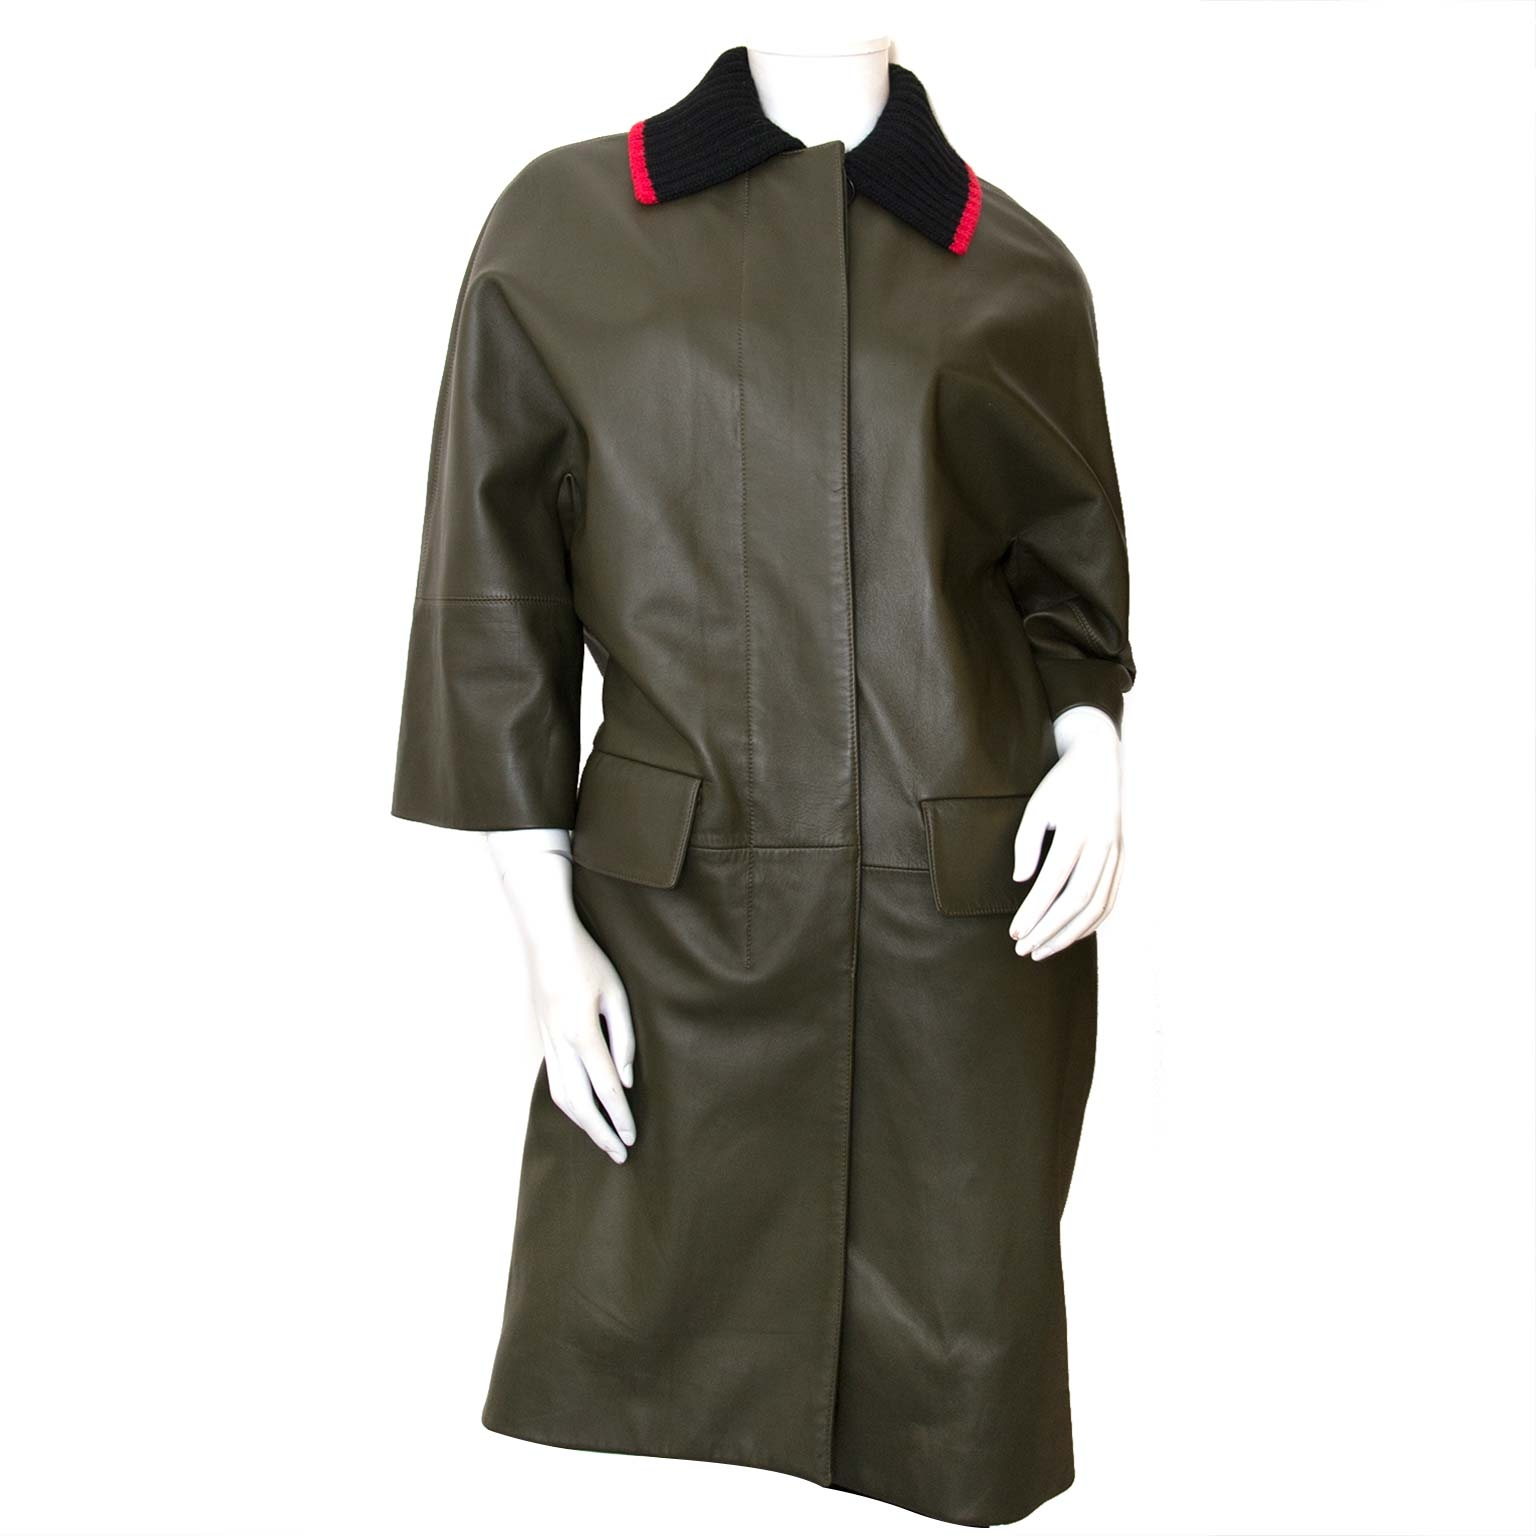 marni khaki leather coat now for sale at labellov vintage fashion webshop belgium